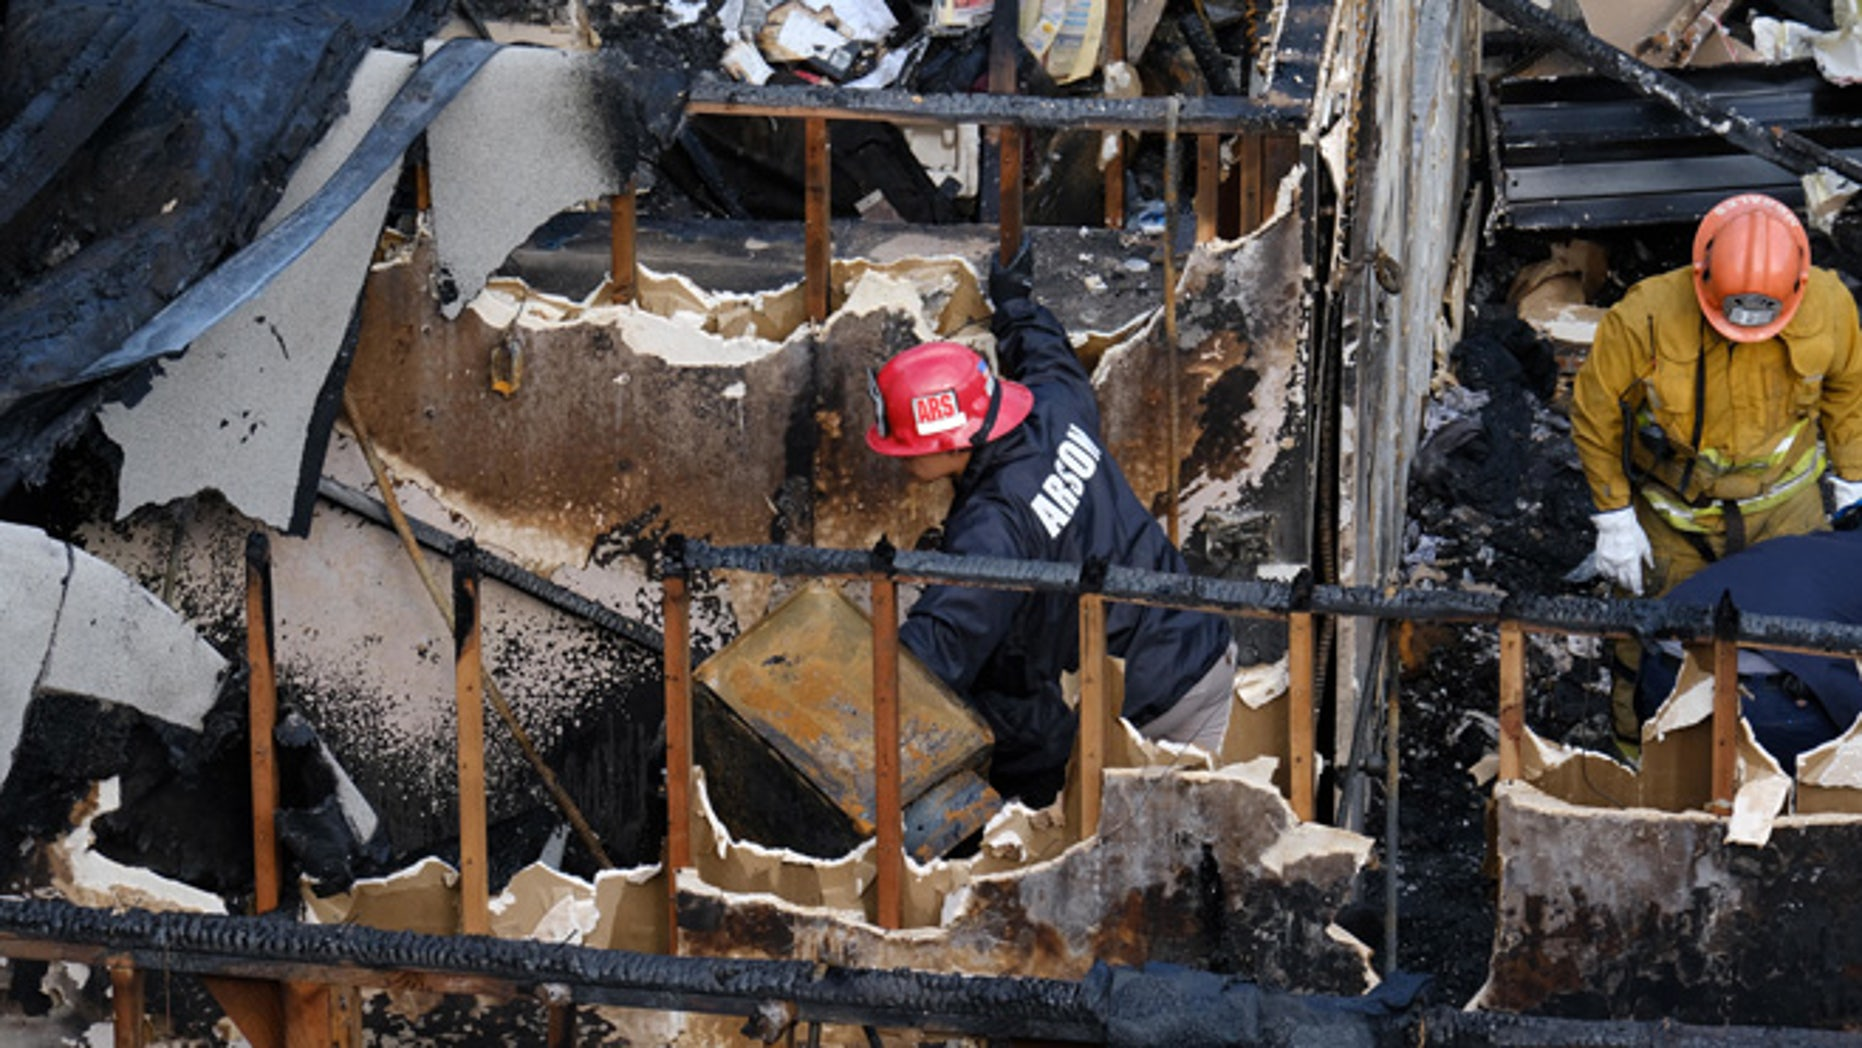 Los Angeles Fire Department arson investigators examine the burned-out ruins of an abandoned office building in the Westlake district just west of downtown Los Angeles Tuesday, June 14, 2016. Two men and two women were found Tuesday after a search using cadaver dogs, bringing the death toll to five. One person was found dead when the building burned Monday evening, June 13. Authorities believe the fire was intentionally set. (AP Photo/Richard Vogel)